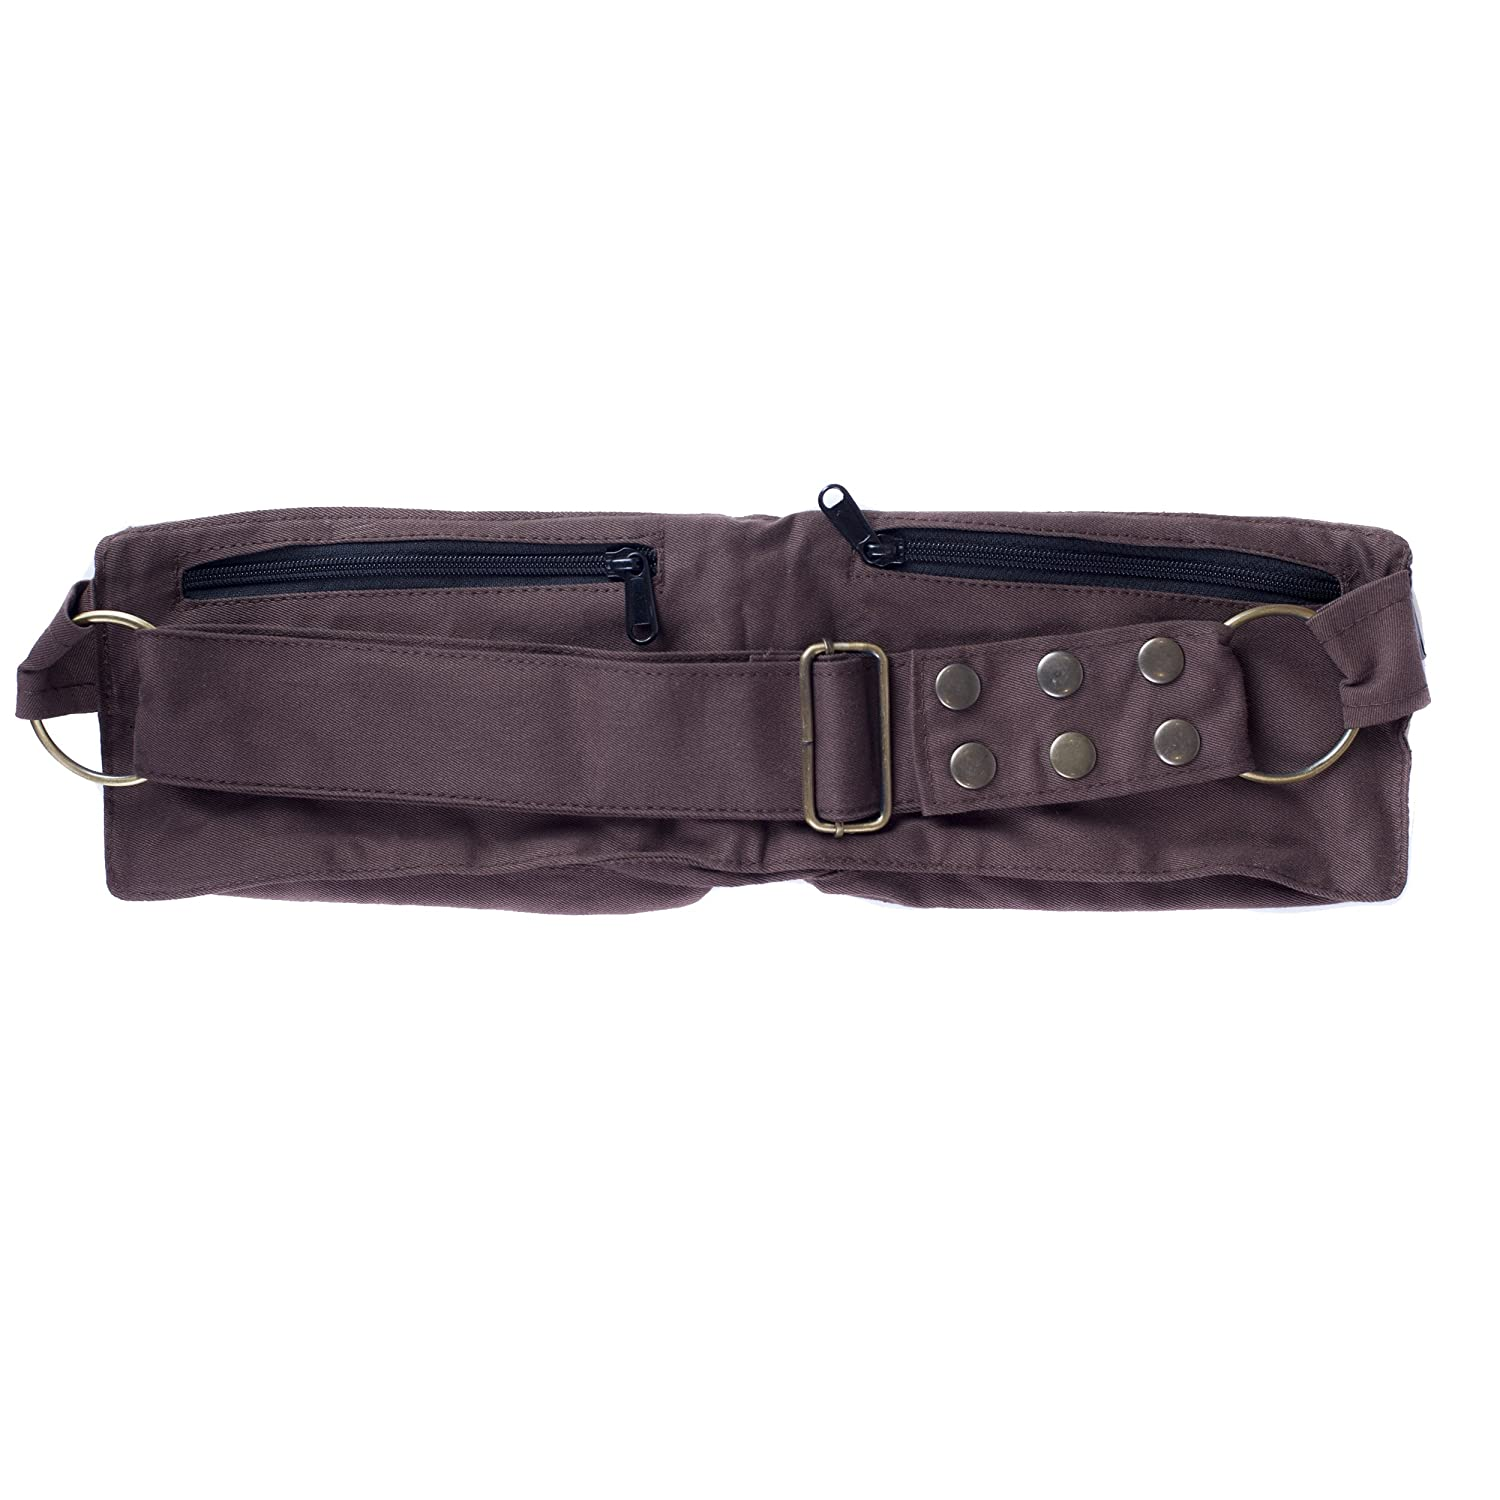 Womens Cotton Travel Utility Festival Belts Fanny Pack-Black-One Size